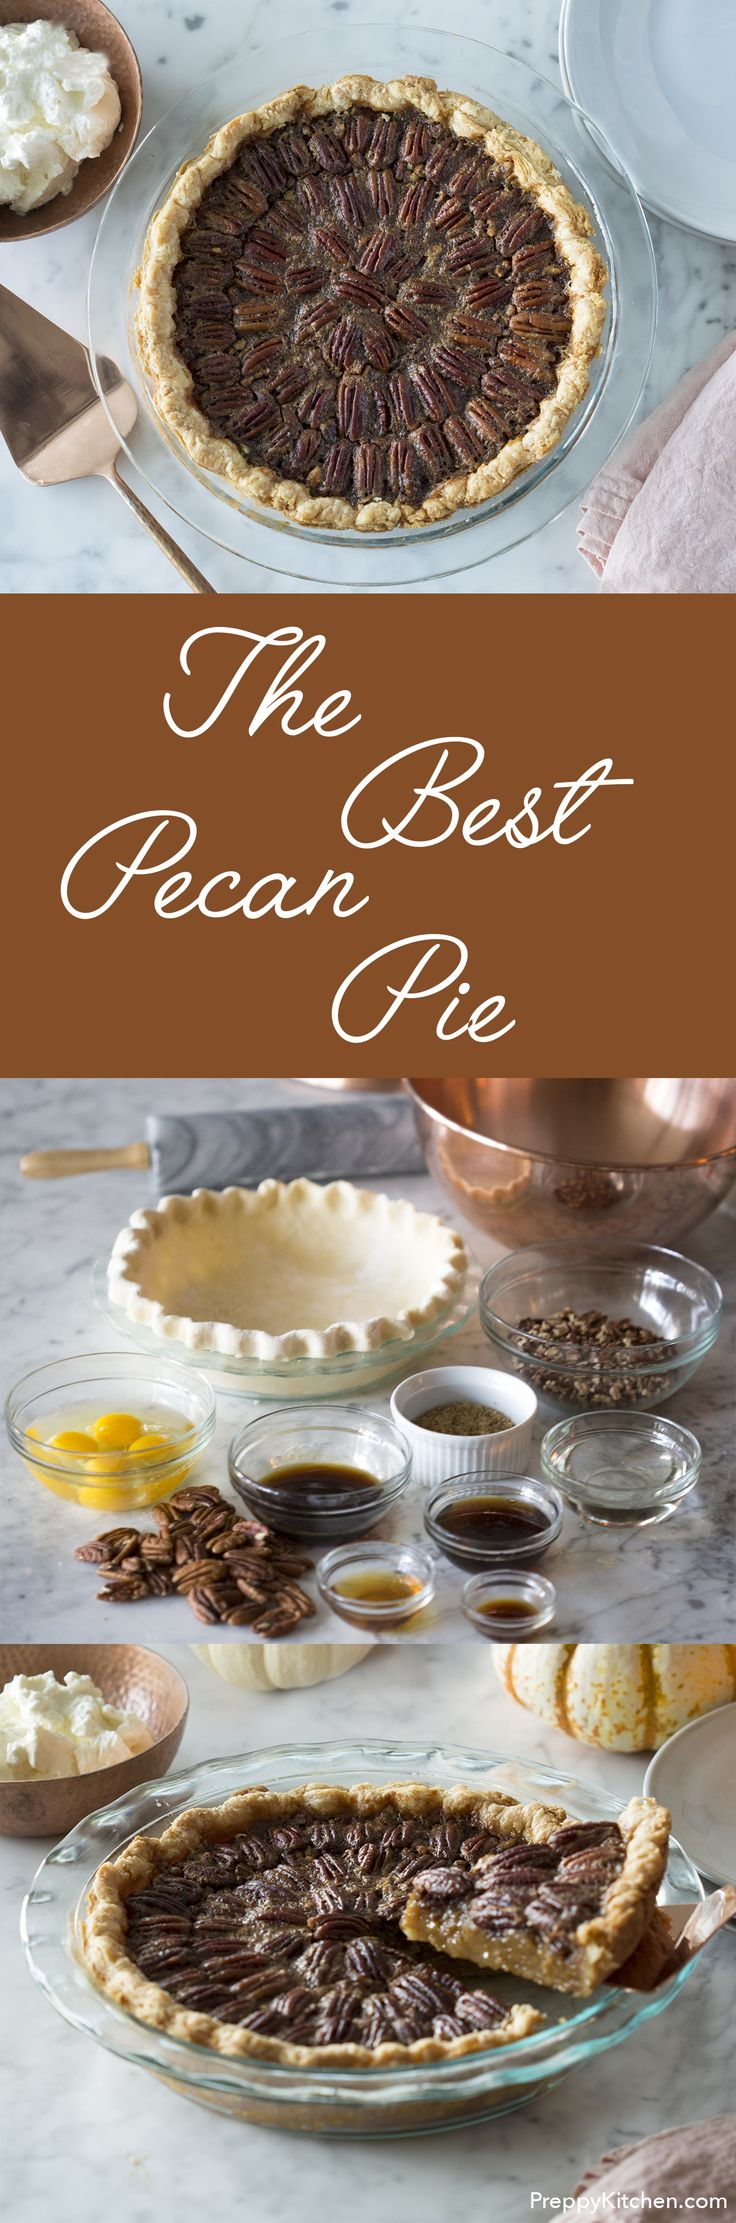 A flakey butter crust, pecans, maple syrup, honey, brown sugar and bourbon combine to make what I consider the perfect pecan pie. via @preppykitchen